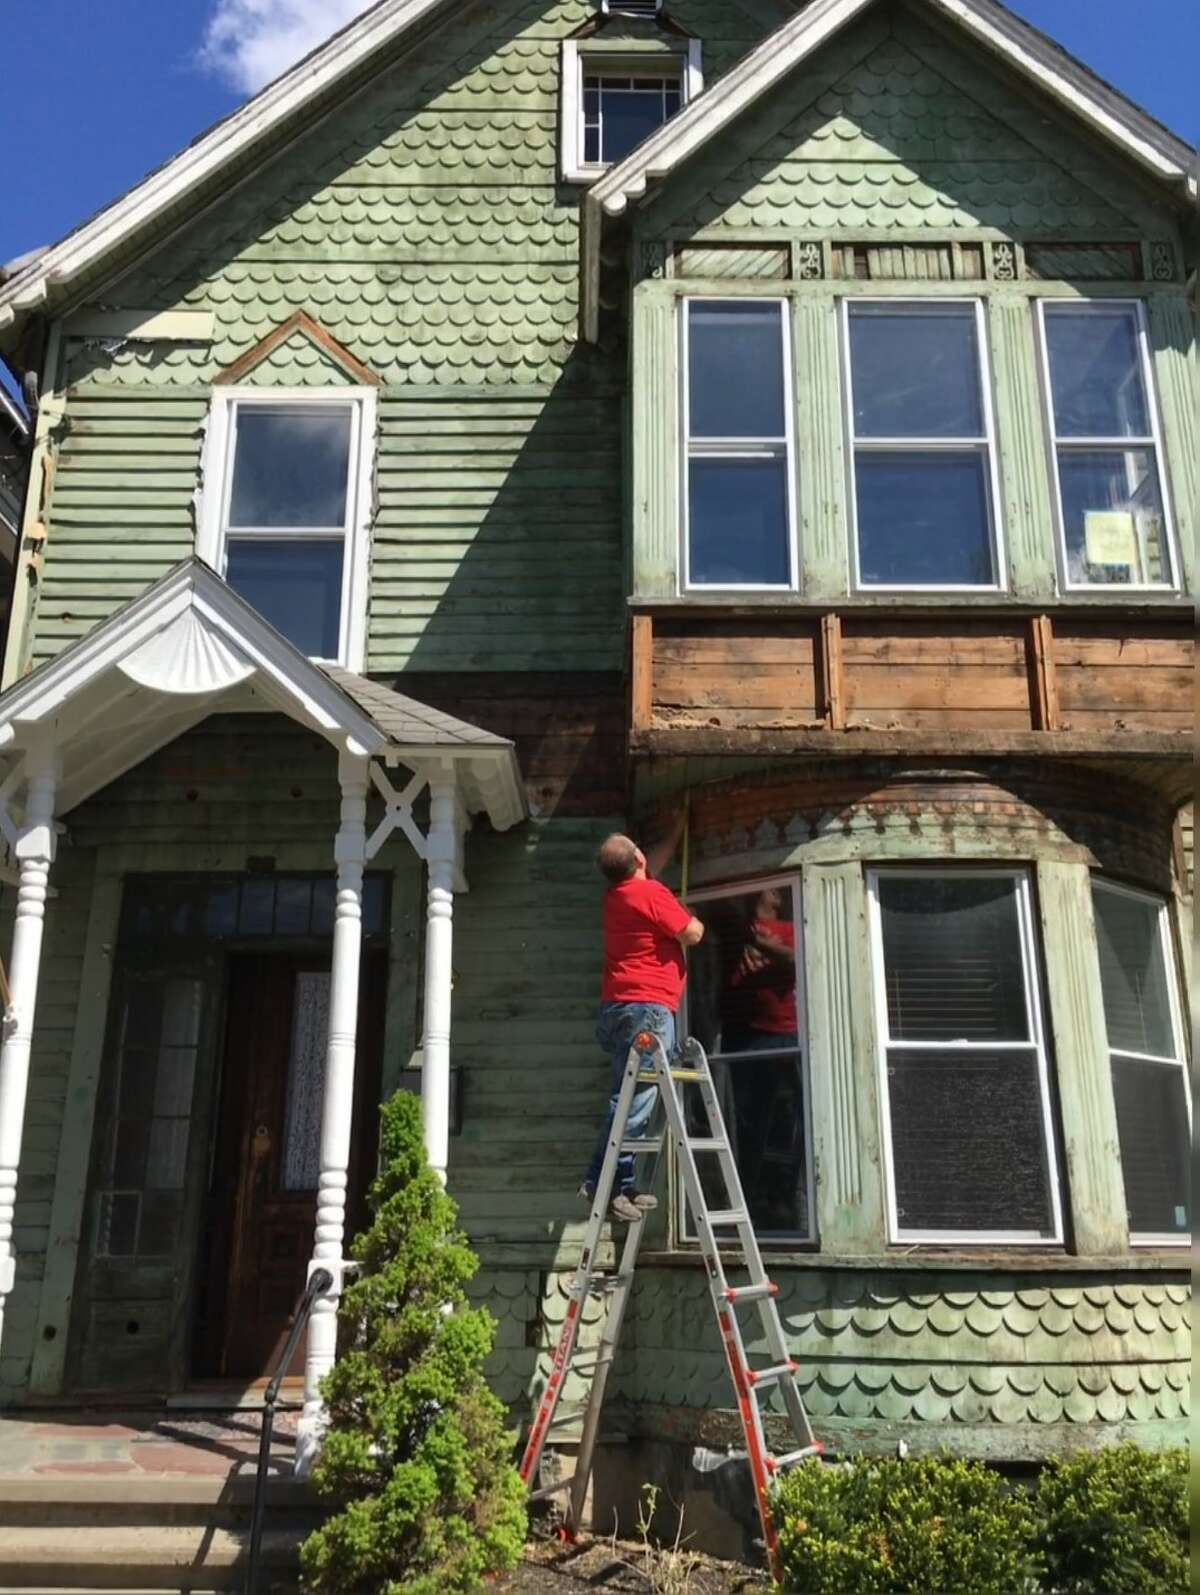 The owners of the Kranick House at 12 N. College St. removed aluminum siding and repaired the original wood siding on the circa 1891 house in 2020. The restoration project chosen for an award in 2021 by the Schenectady Heritage Foundation.